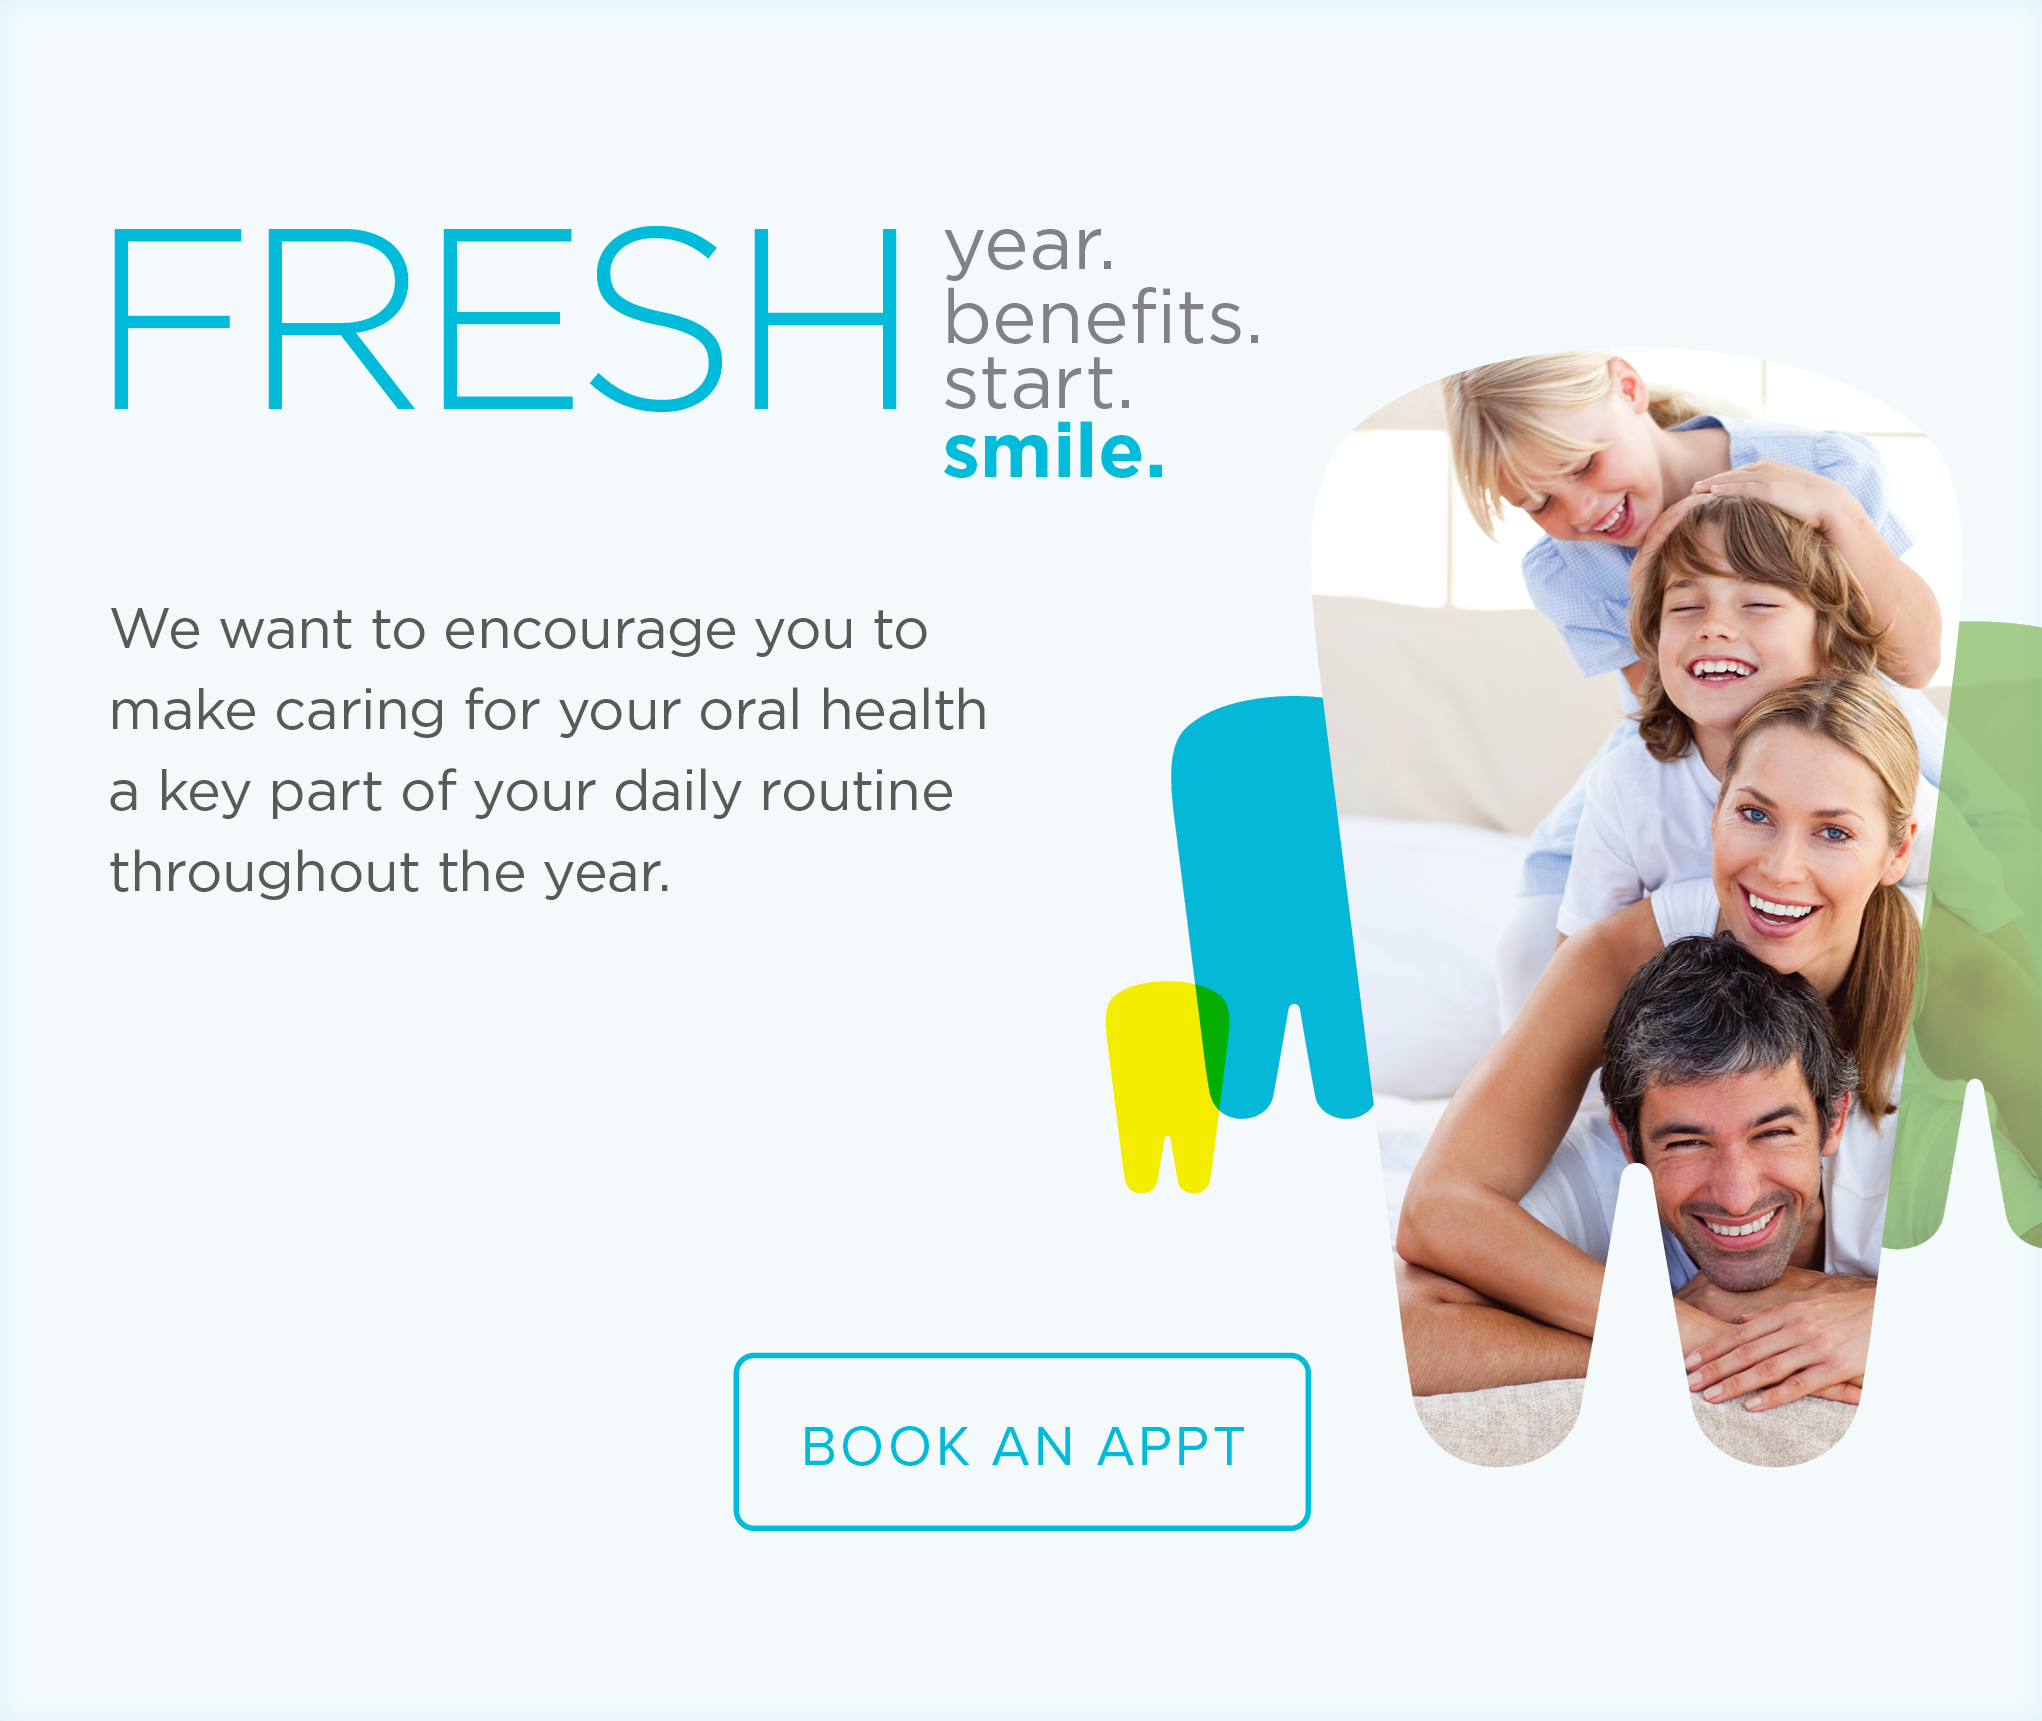 Smyrna Modern Dentistry - Make the Most of Your Benefits